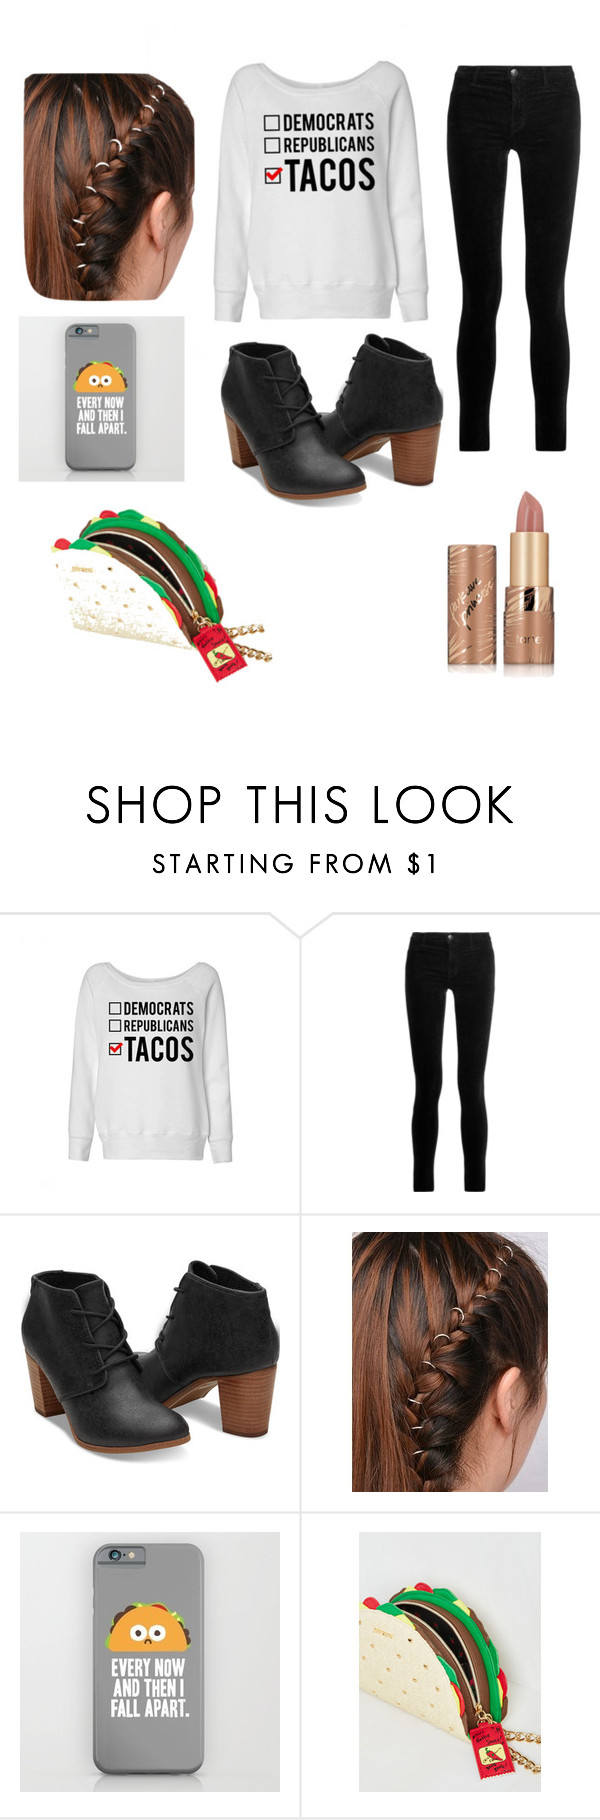 """Taco's"" by hannahl5soselden ❤ liked on Polyvore featuring J Brand and tarte"